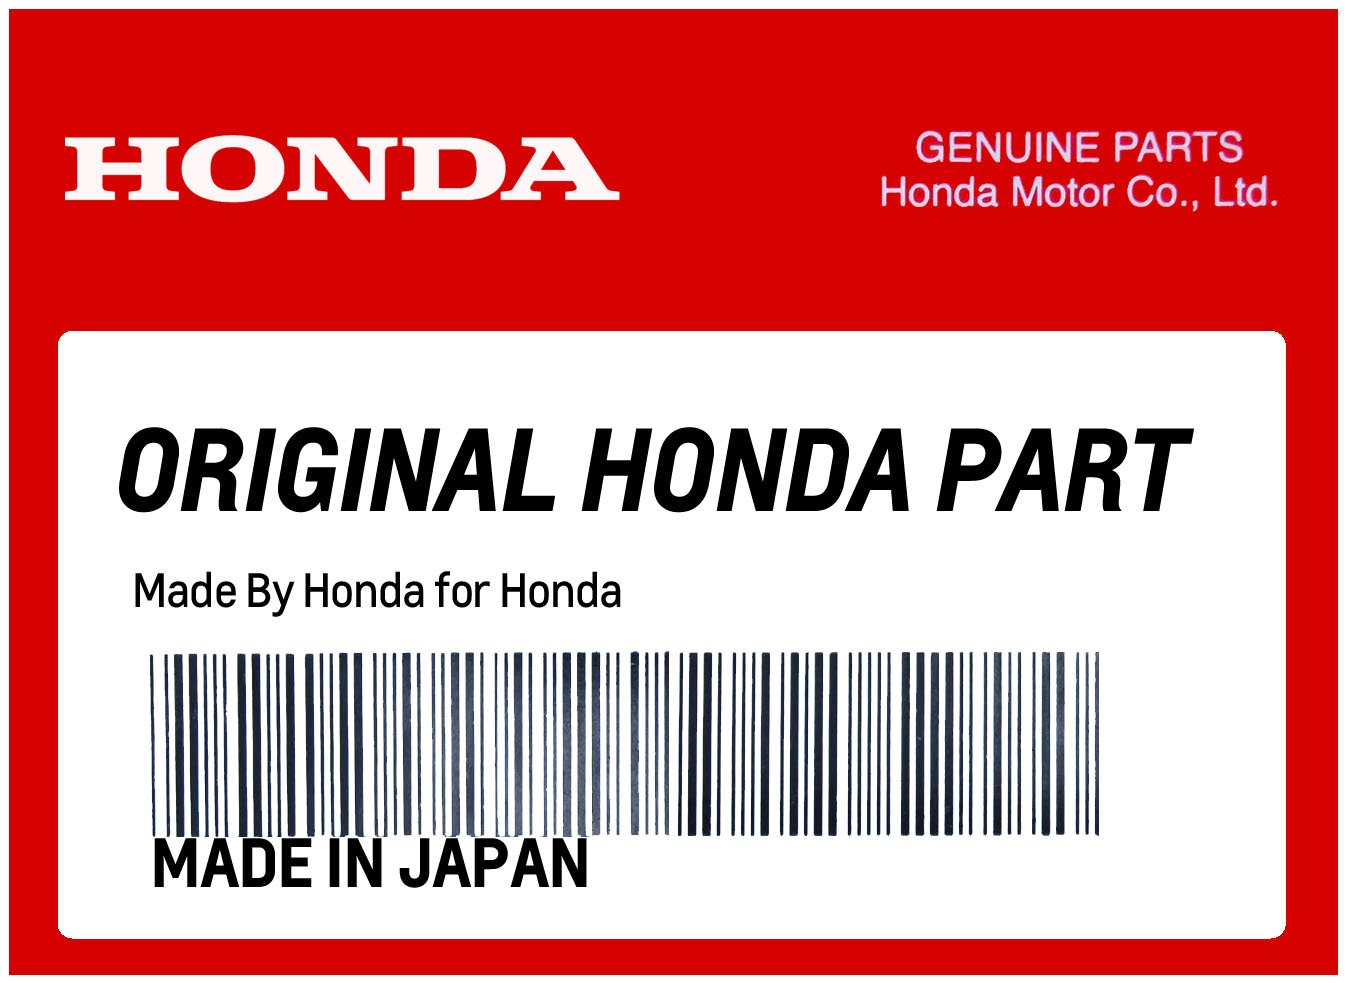 HONDA 24421-041-000 PIN, GEARSHIFT DRUM